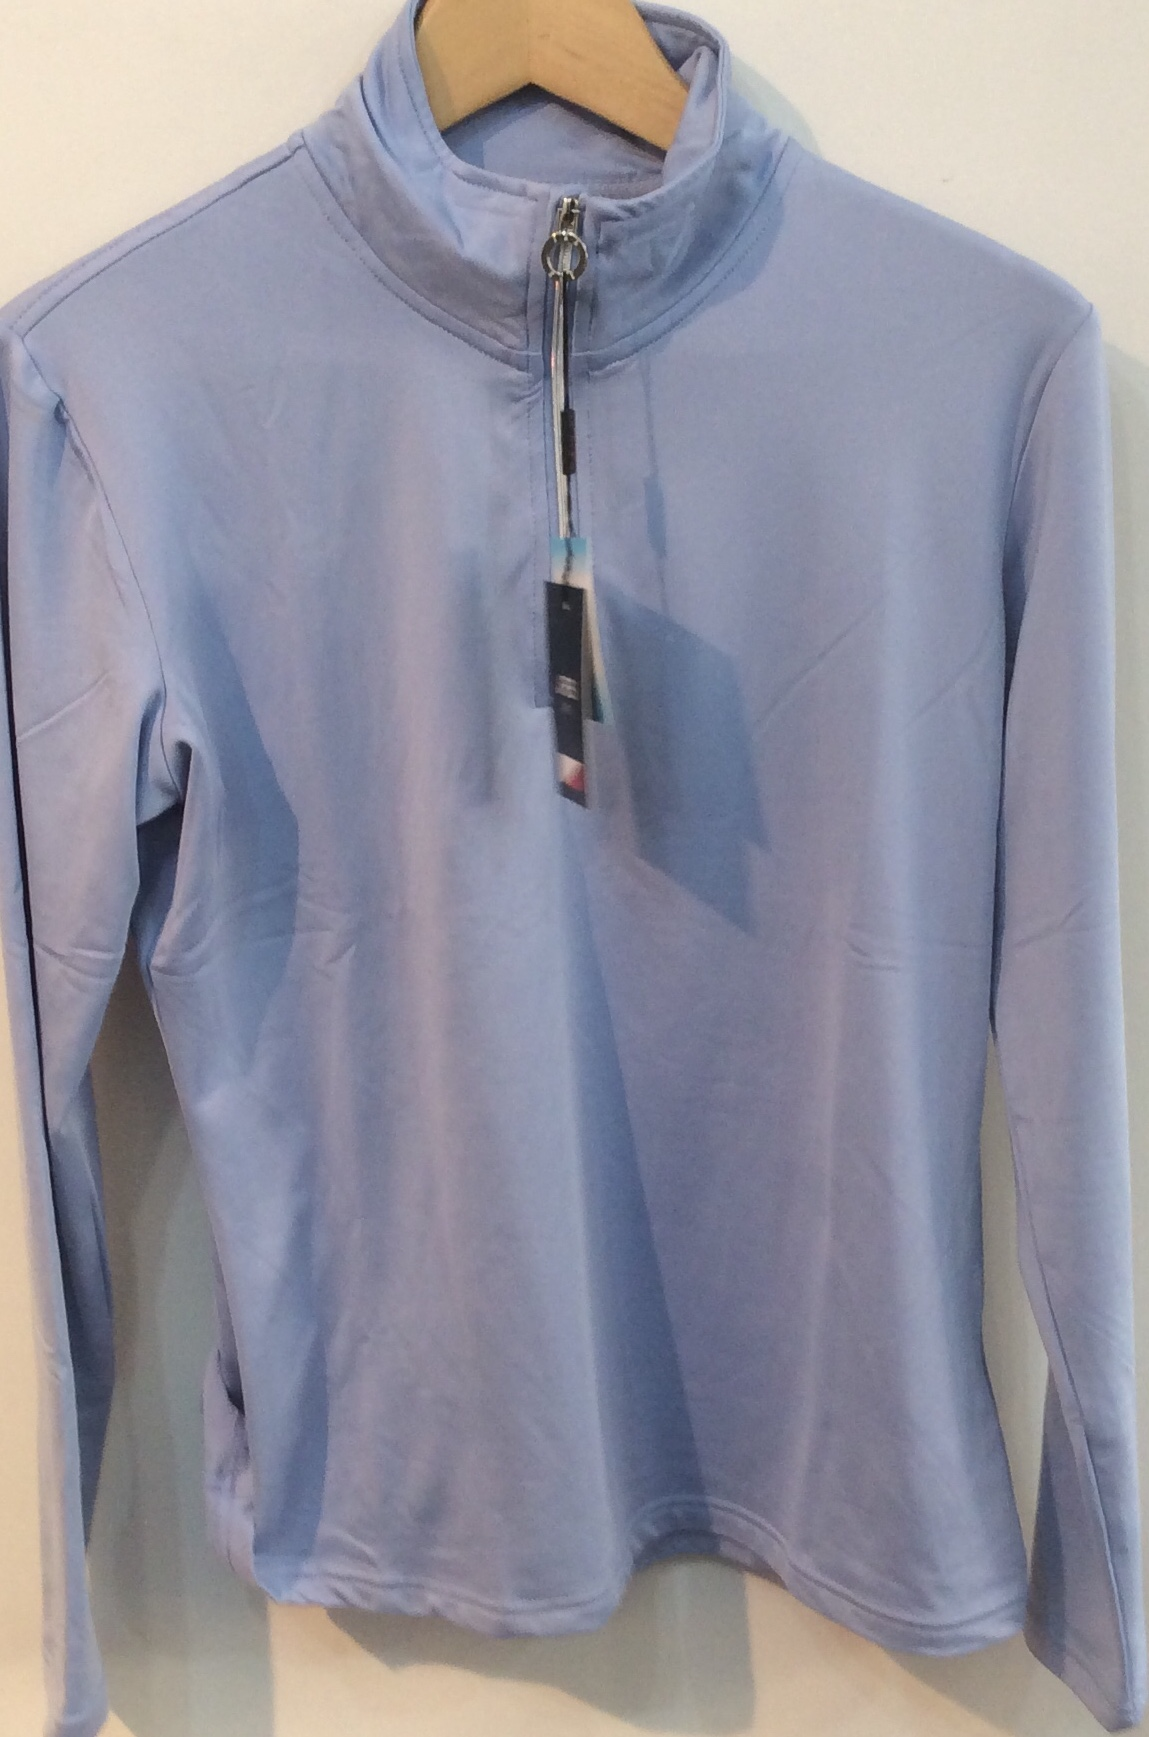 JRB 1/4 zip top - Blue